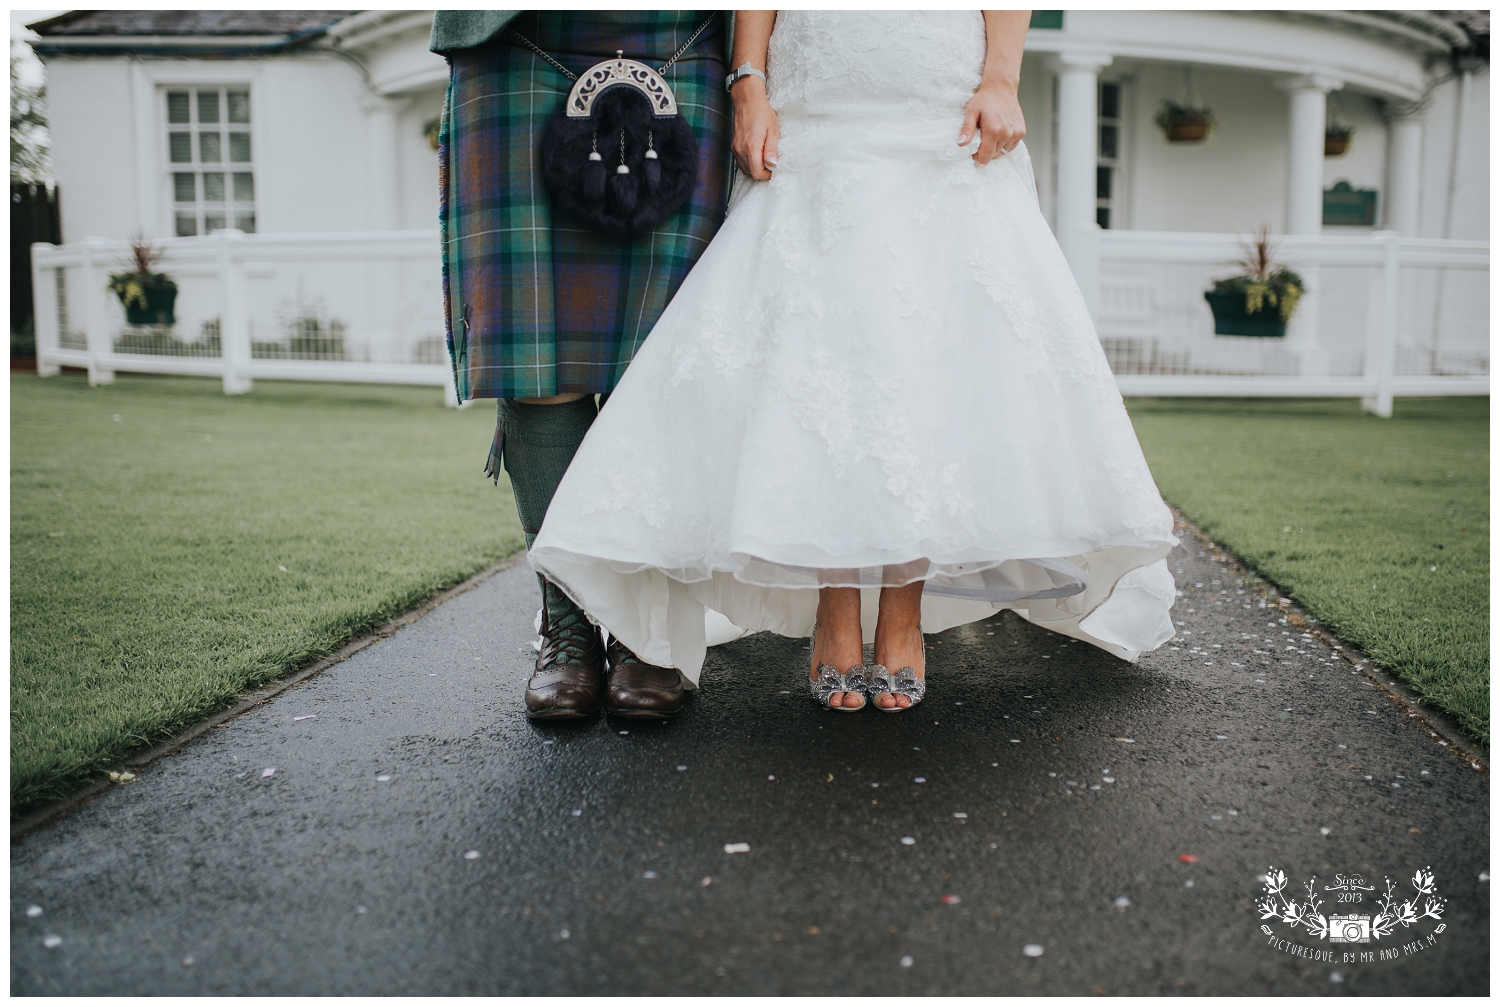 Hamilton Park Racecourse  wedding photography, Picturesque by Mr and Mrs M_0056.jpg